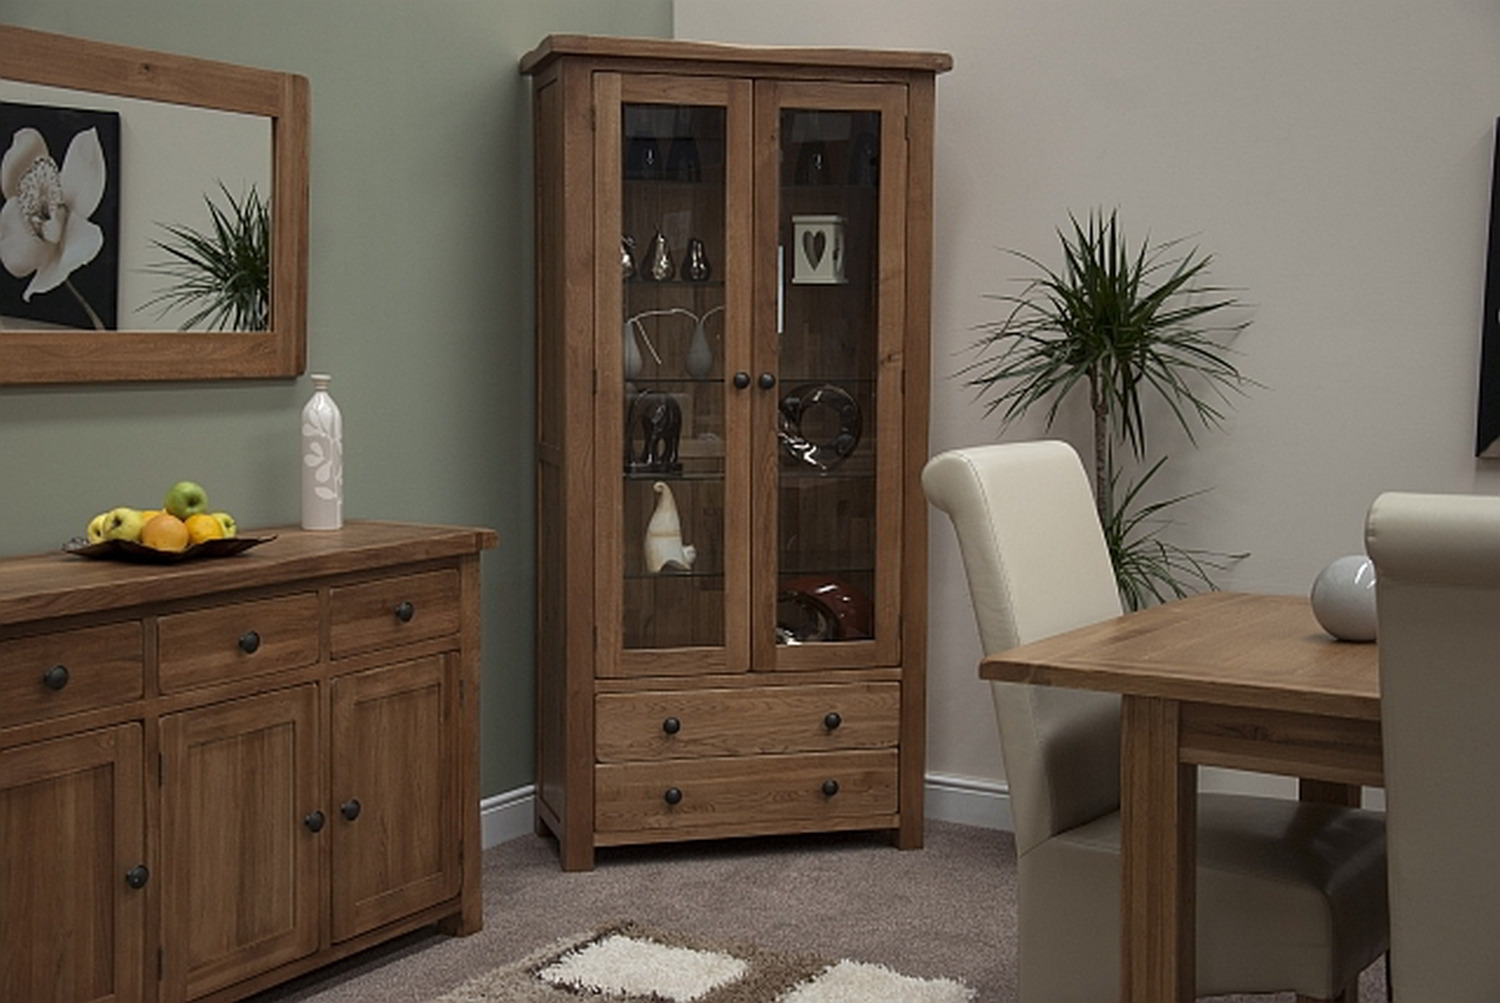 Living Room Cabinet : Tilson solid rustic oak living room furniture glass ...